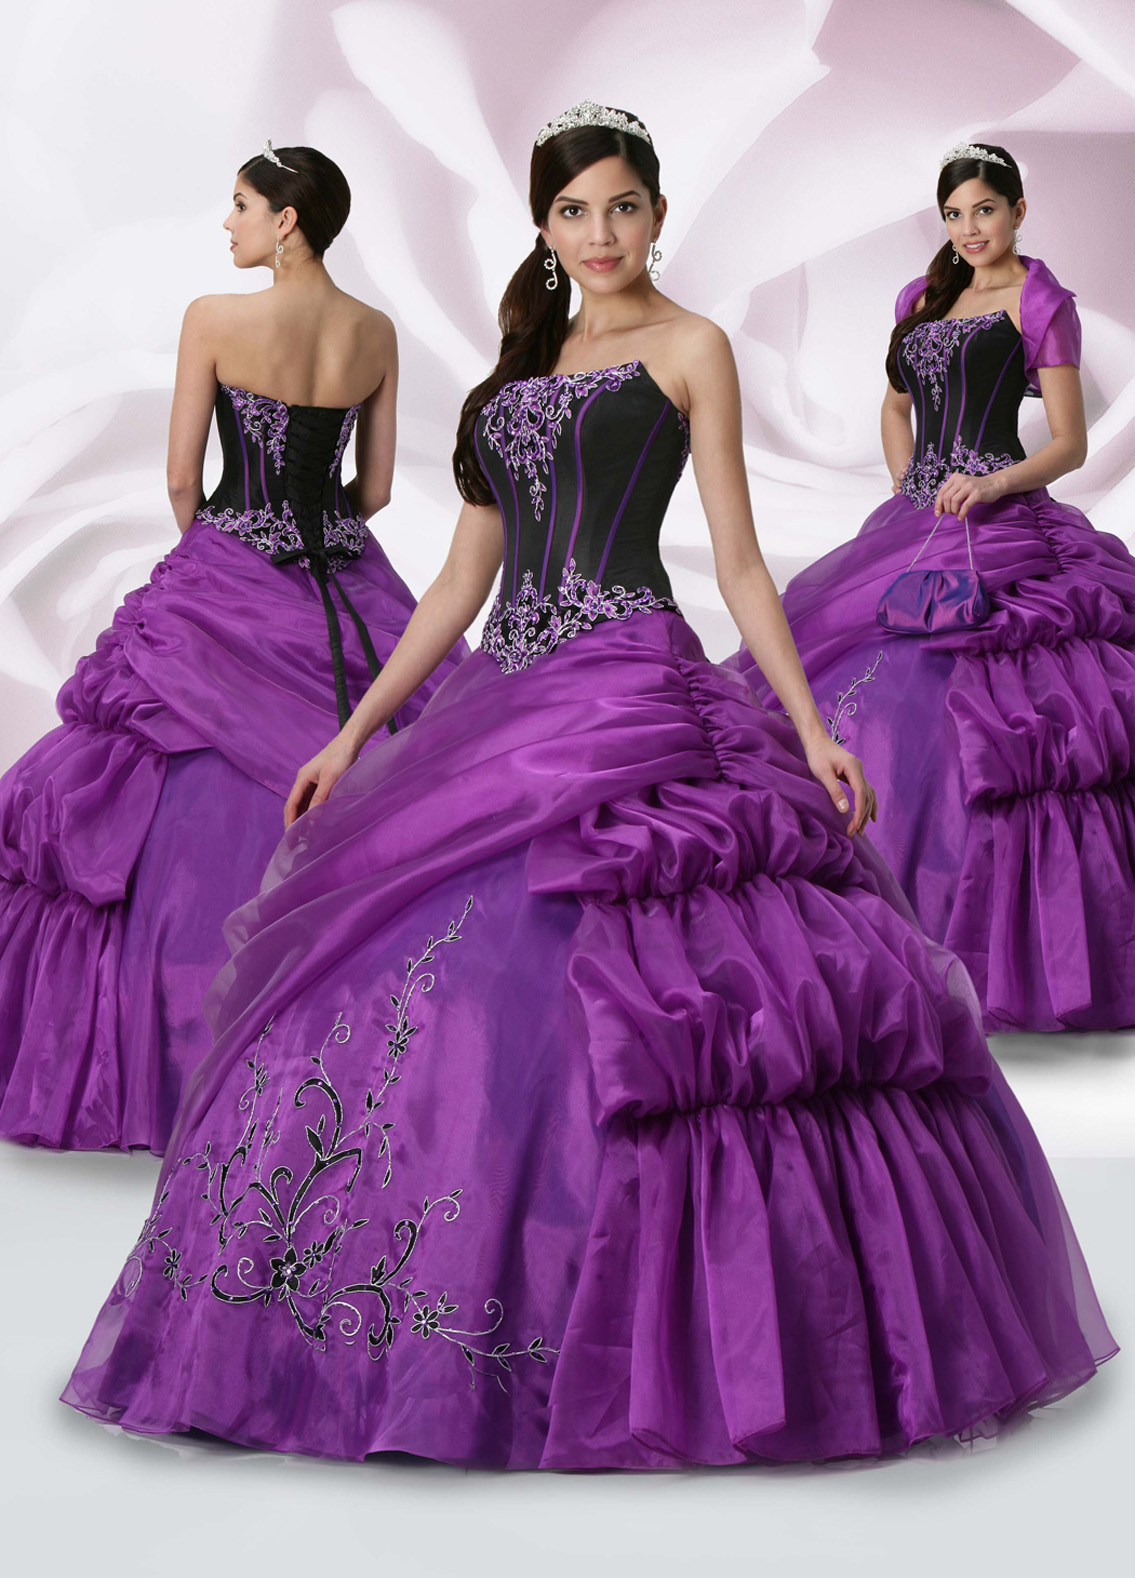 5 ways of wearing a Purple Quinceanera Dresses